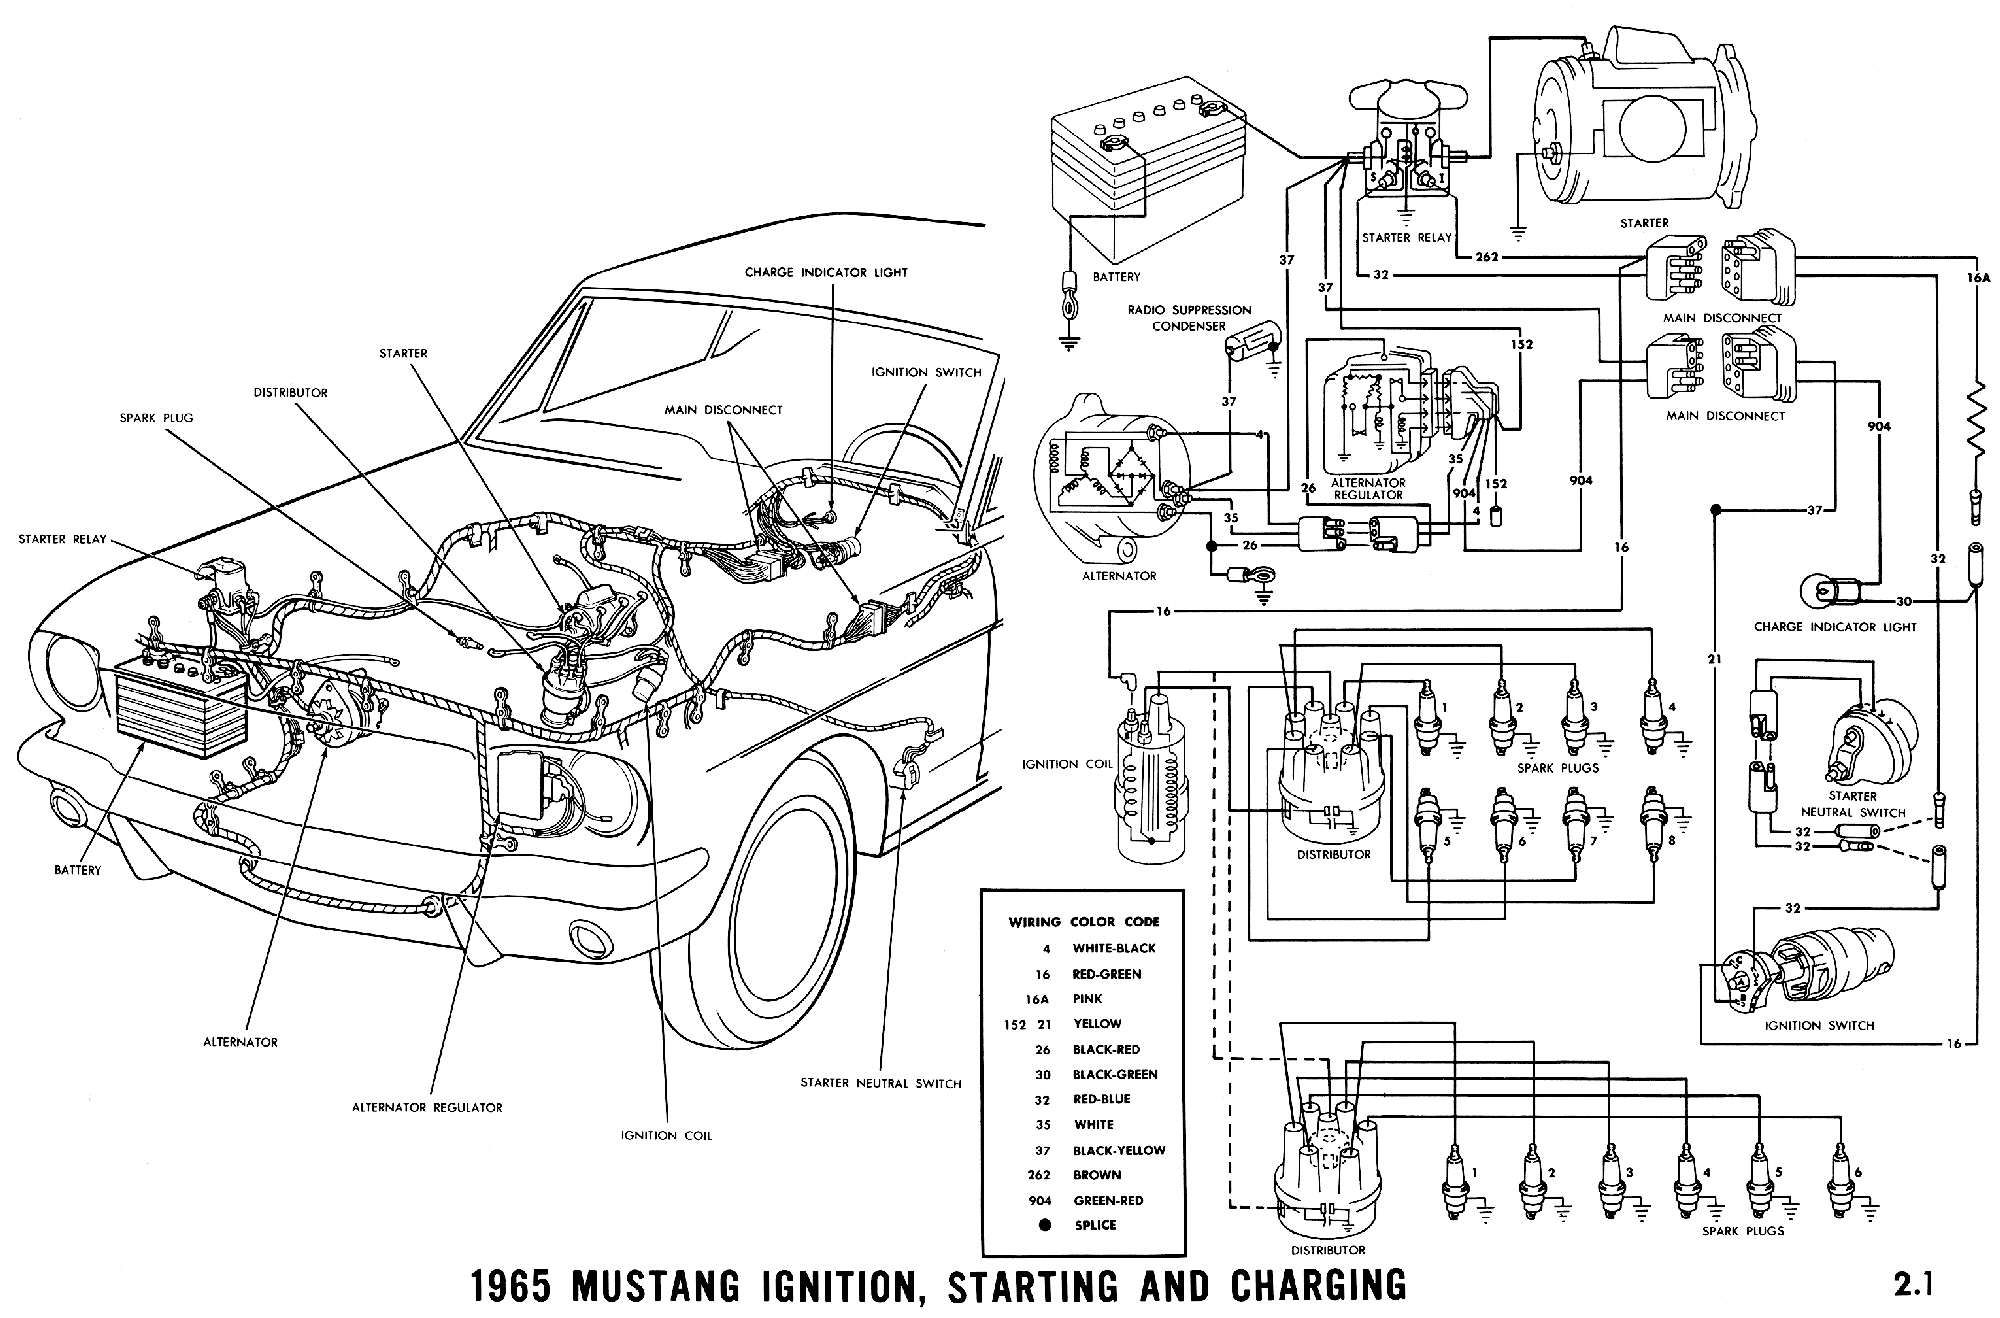 2b4c8d3809962afcbebfb7e8a60704ce 1965 mustang wiring diagrams average joe restoration mustang Ford Alternator Wiring Diagram at virtualis.co